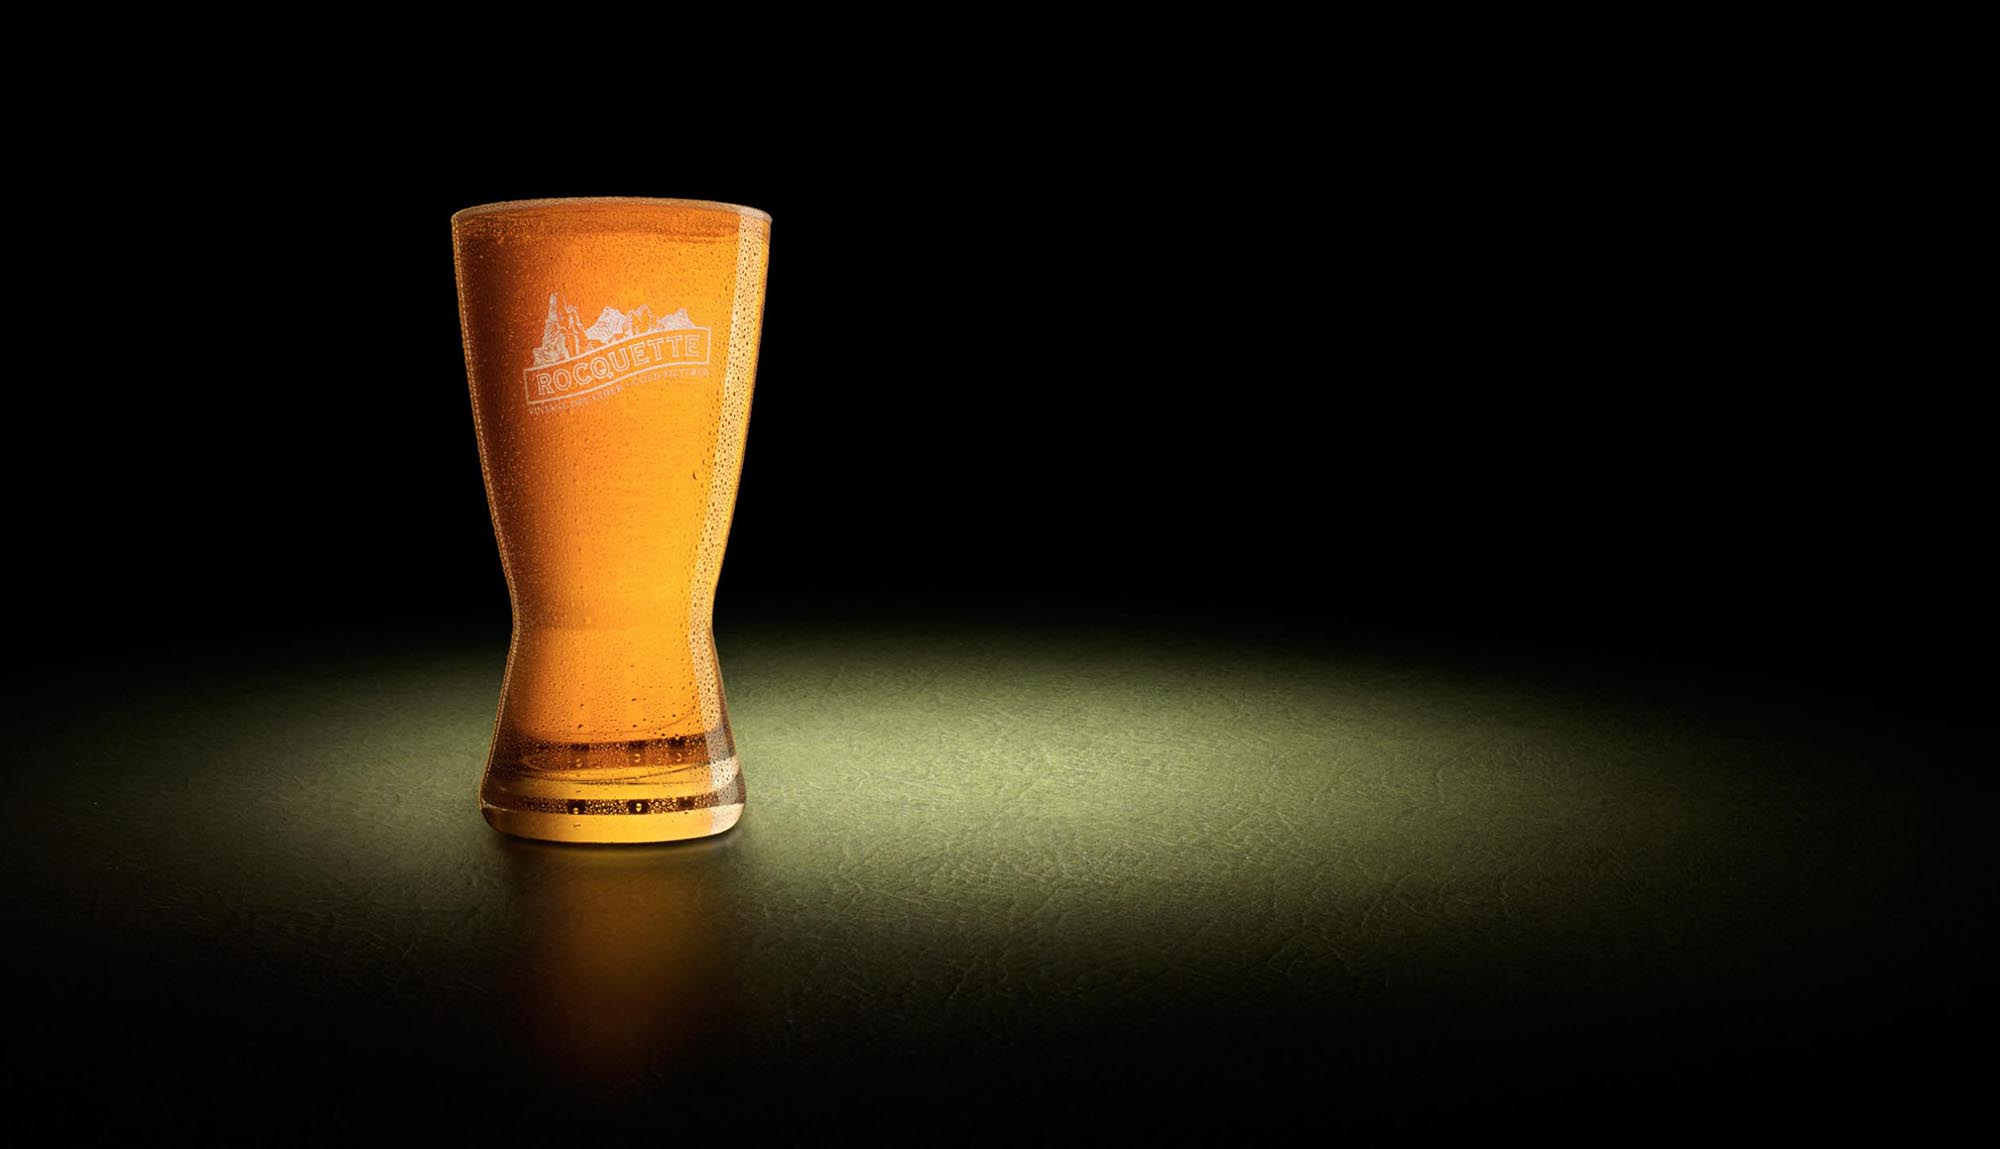 Product advertising image of pint of cider.